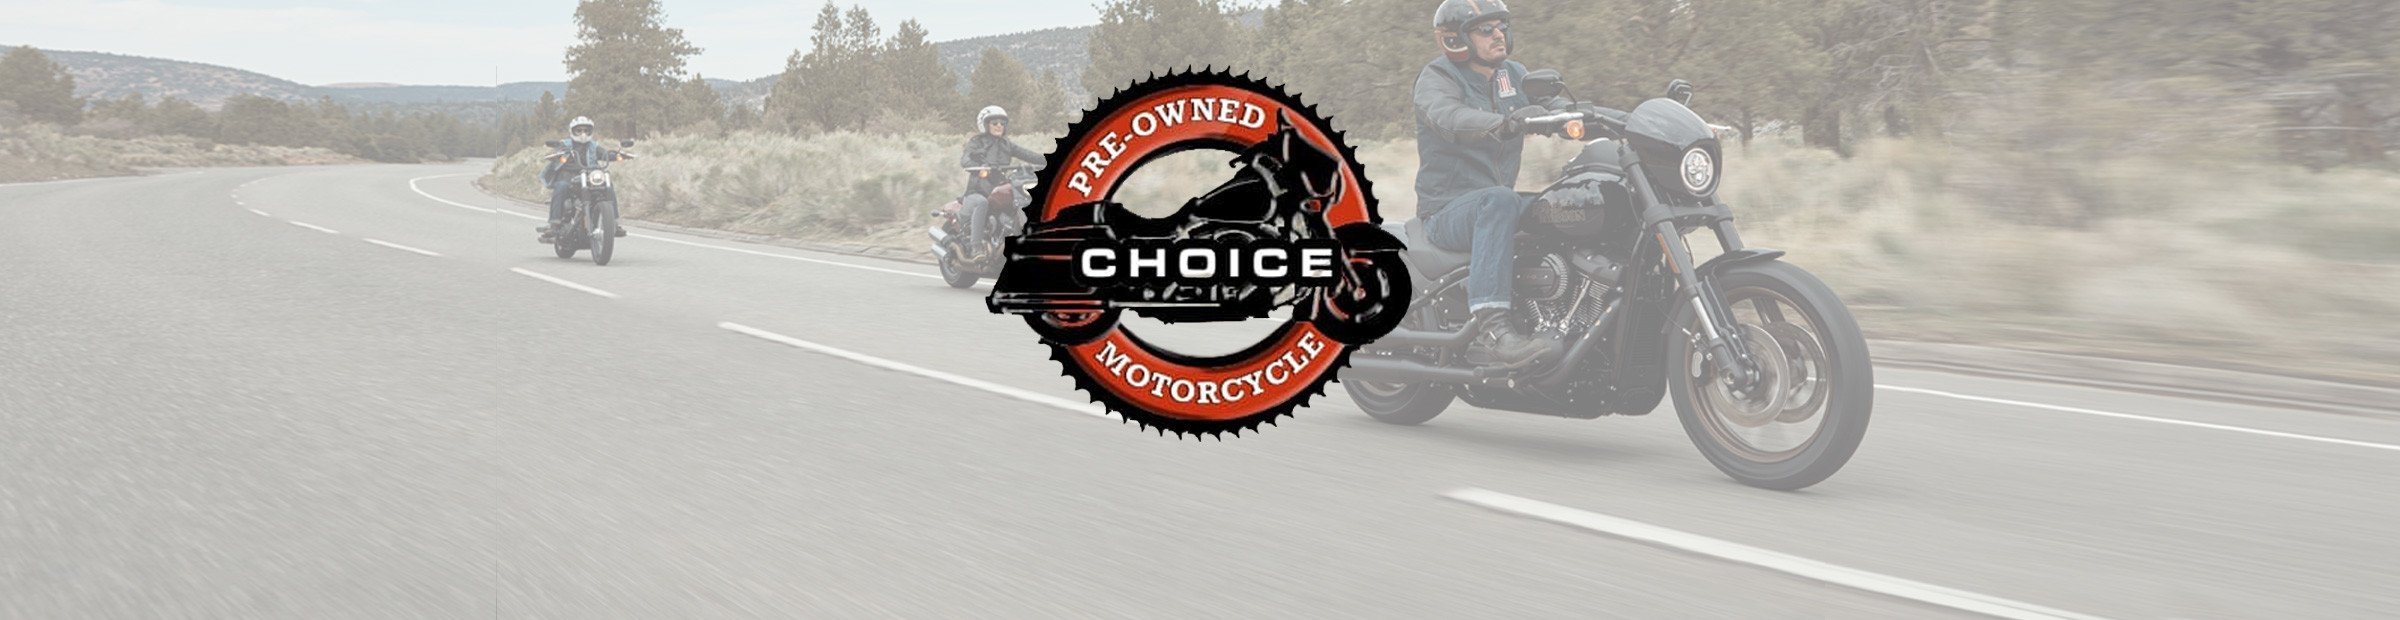 Choice Pre-Owned Motorcycles for Sale in East Hartford, CT